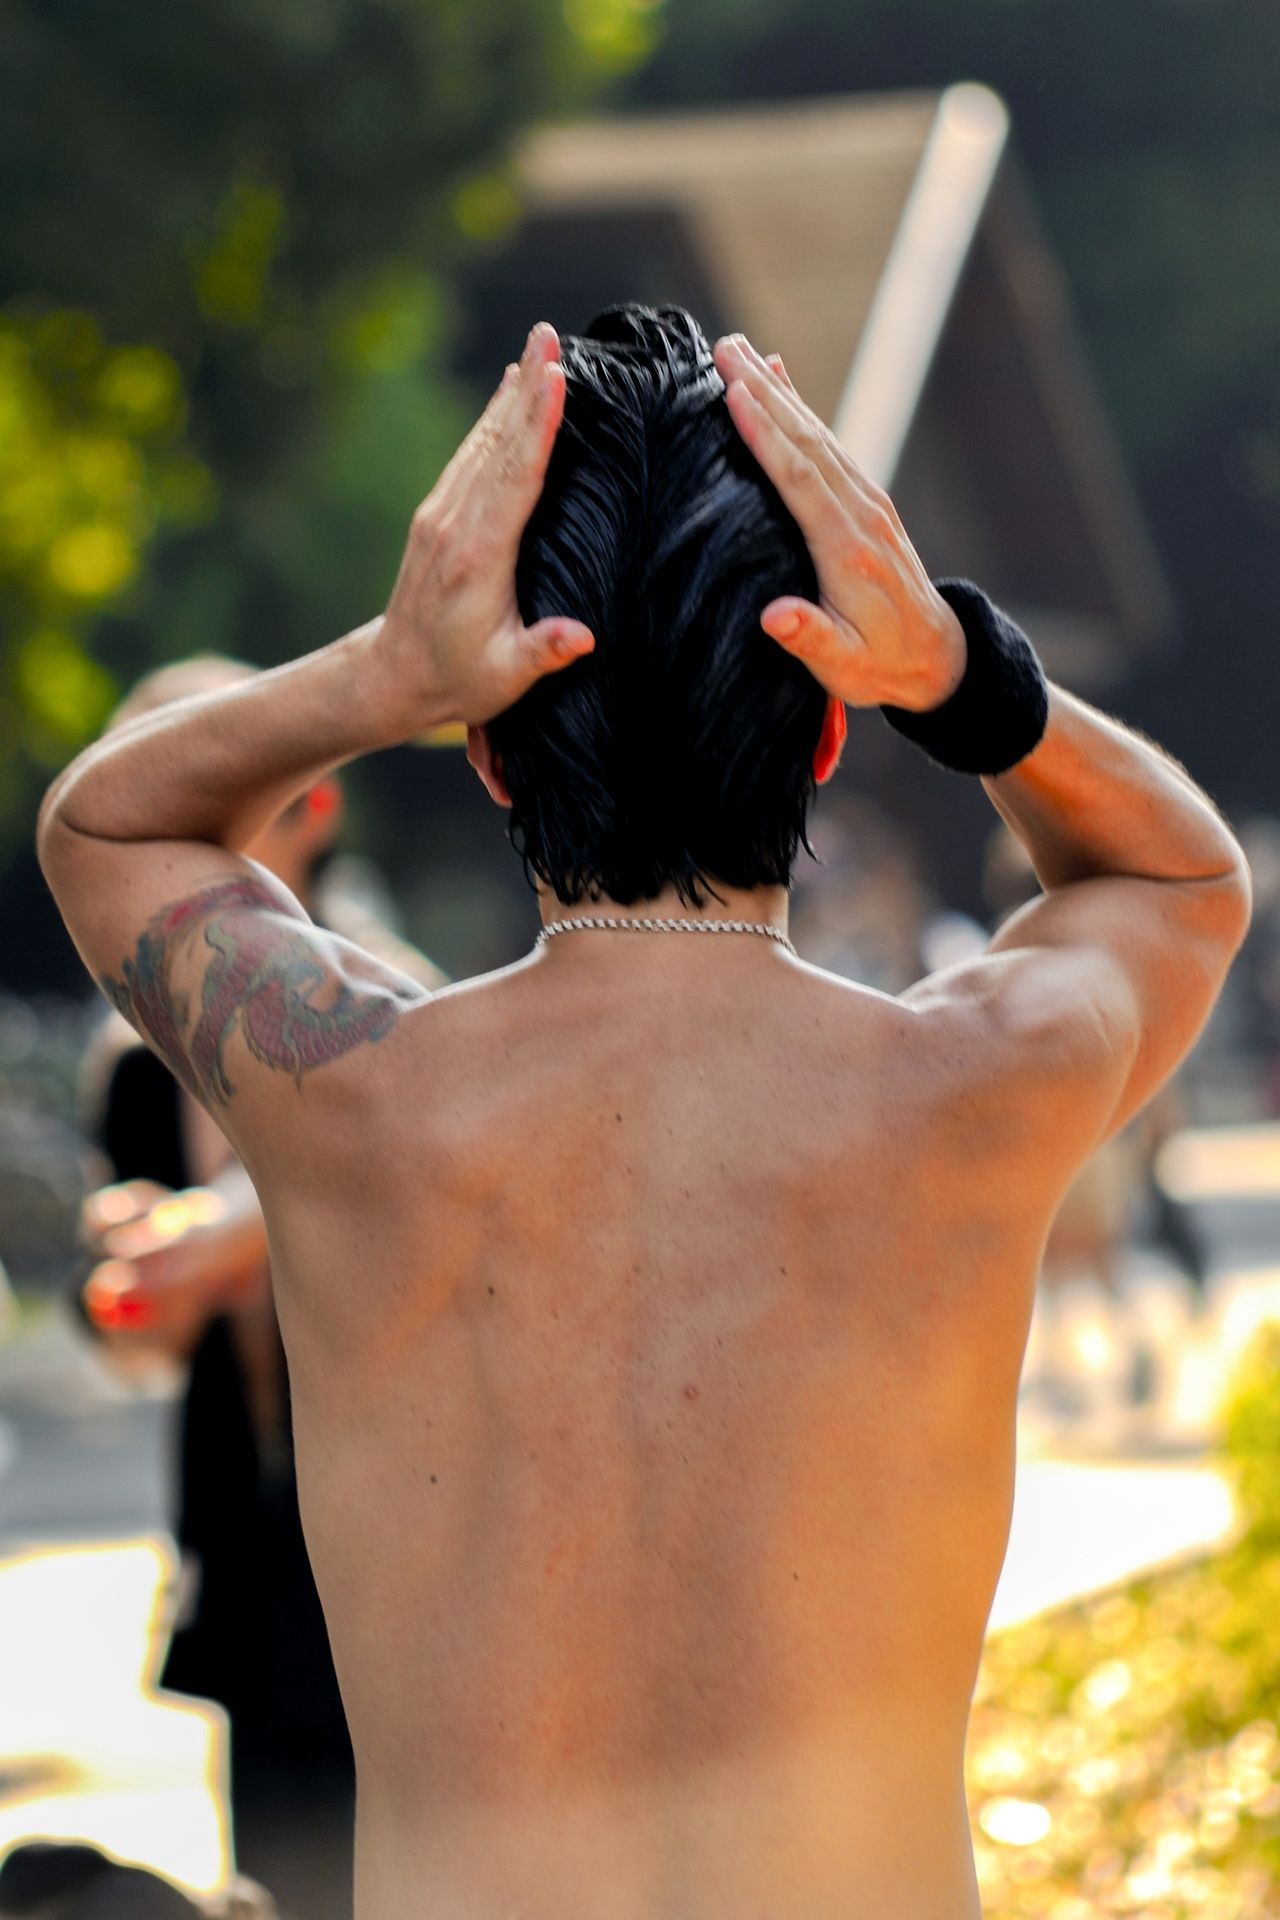 A 50's style Rocker's fixing his hair at Yoyogi Park, Tokyo, Japan. 50's Style Close-up Day Focus On Foreground Hair Hairdye Human Hand Leisure Activity Lifestyles One Person Outdoors Real People Rear View Rock N Roll Rocker Shirtless Standing The Portraitist - 2017 EyeEm Awards